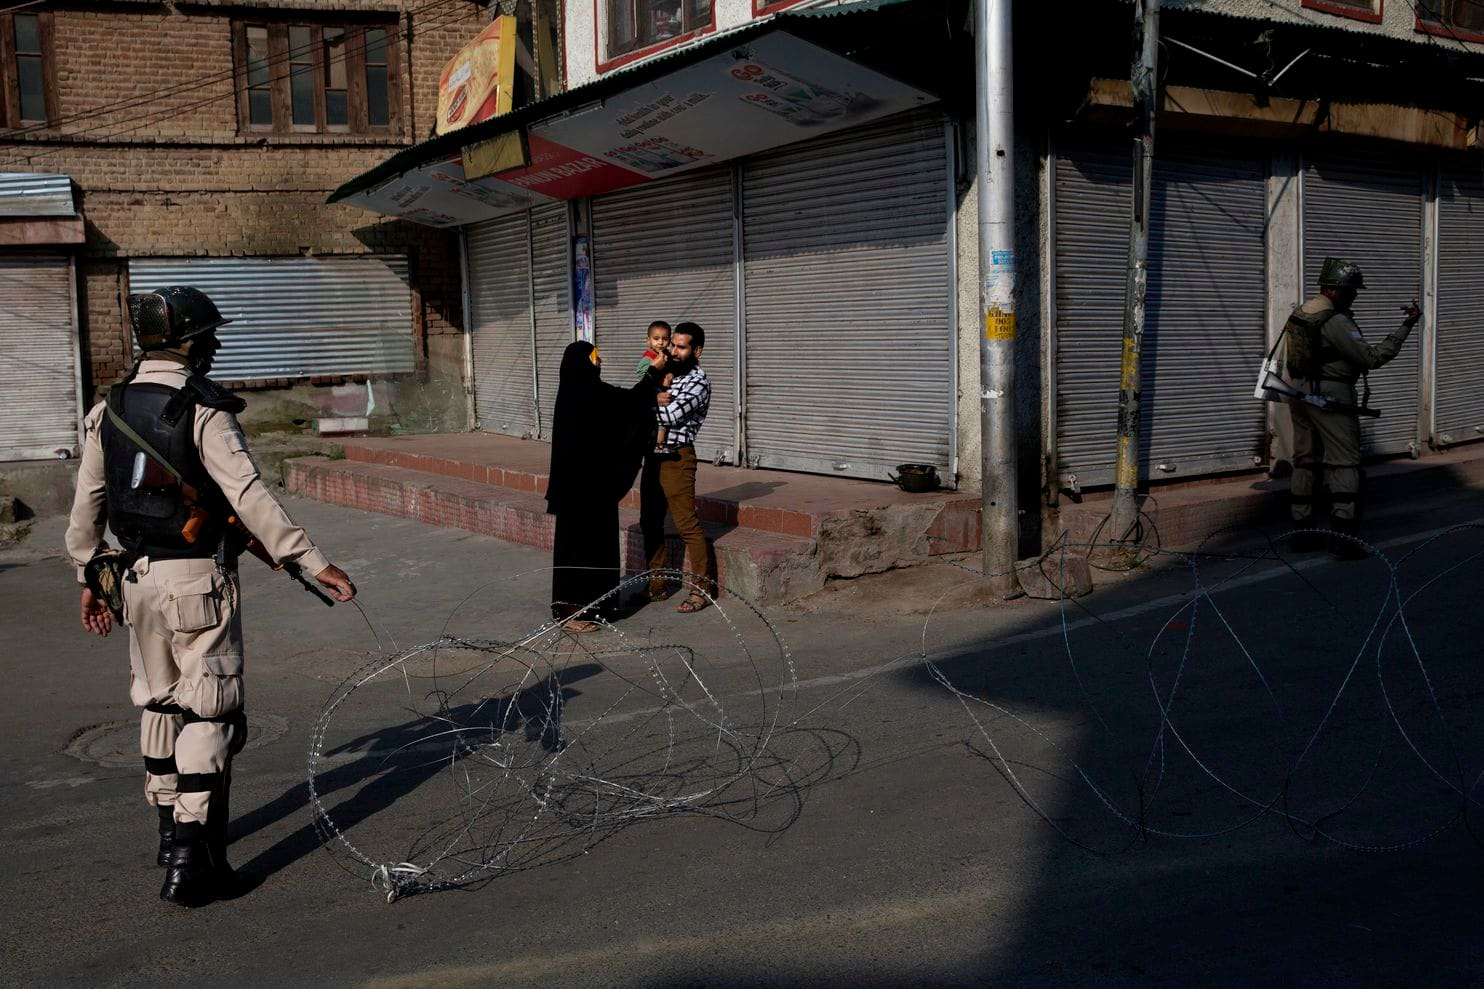 In this Friday, Aug. 23, 2019, file photo, a Kashmiri family waits for a lift to take their sick child to hospital as Indian paramilitary soldiers stand guard near a checkpoint during lockdown in Srinagar, Indian controlled Kashmir. India's top court is taking up legal challenges to the government's decision to revoke Indian-controlled Kashmir's special status and has asked the government to explain its stance to the court. The Supreme Court held a preliminary hearing on the petitions Wednesday, Aug. 28, and said five judges will start a regular hearing in October. (Dar Yasin, File/Associated Press)